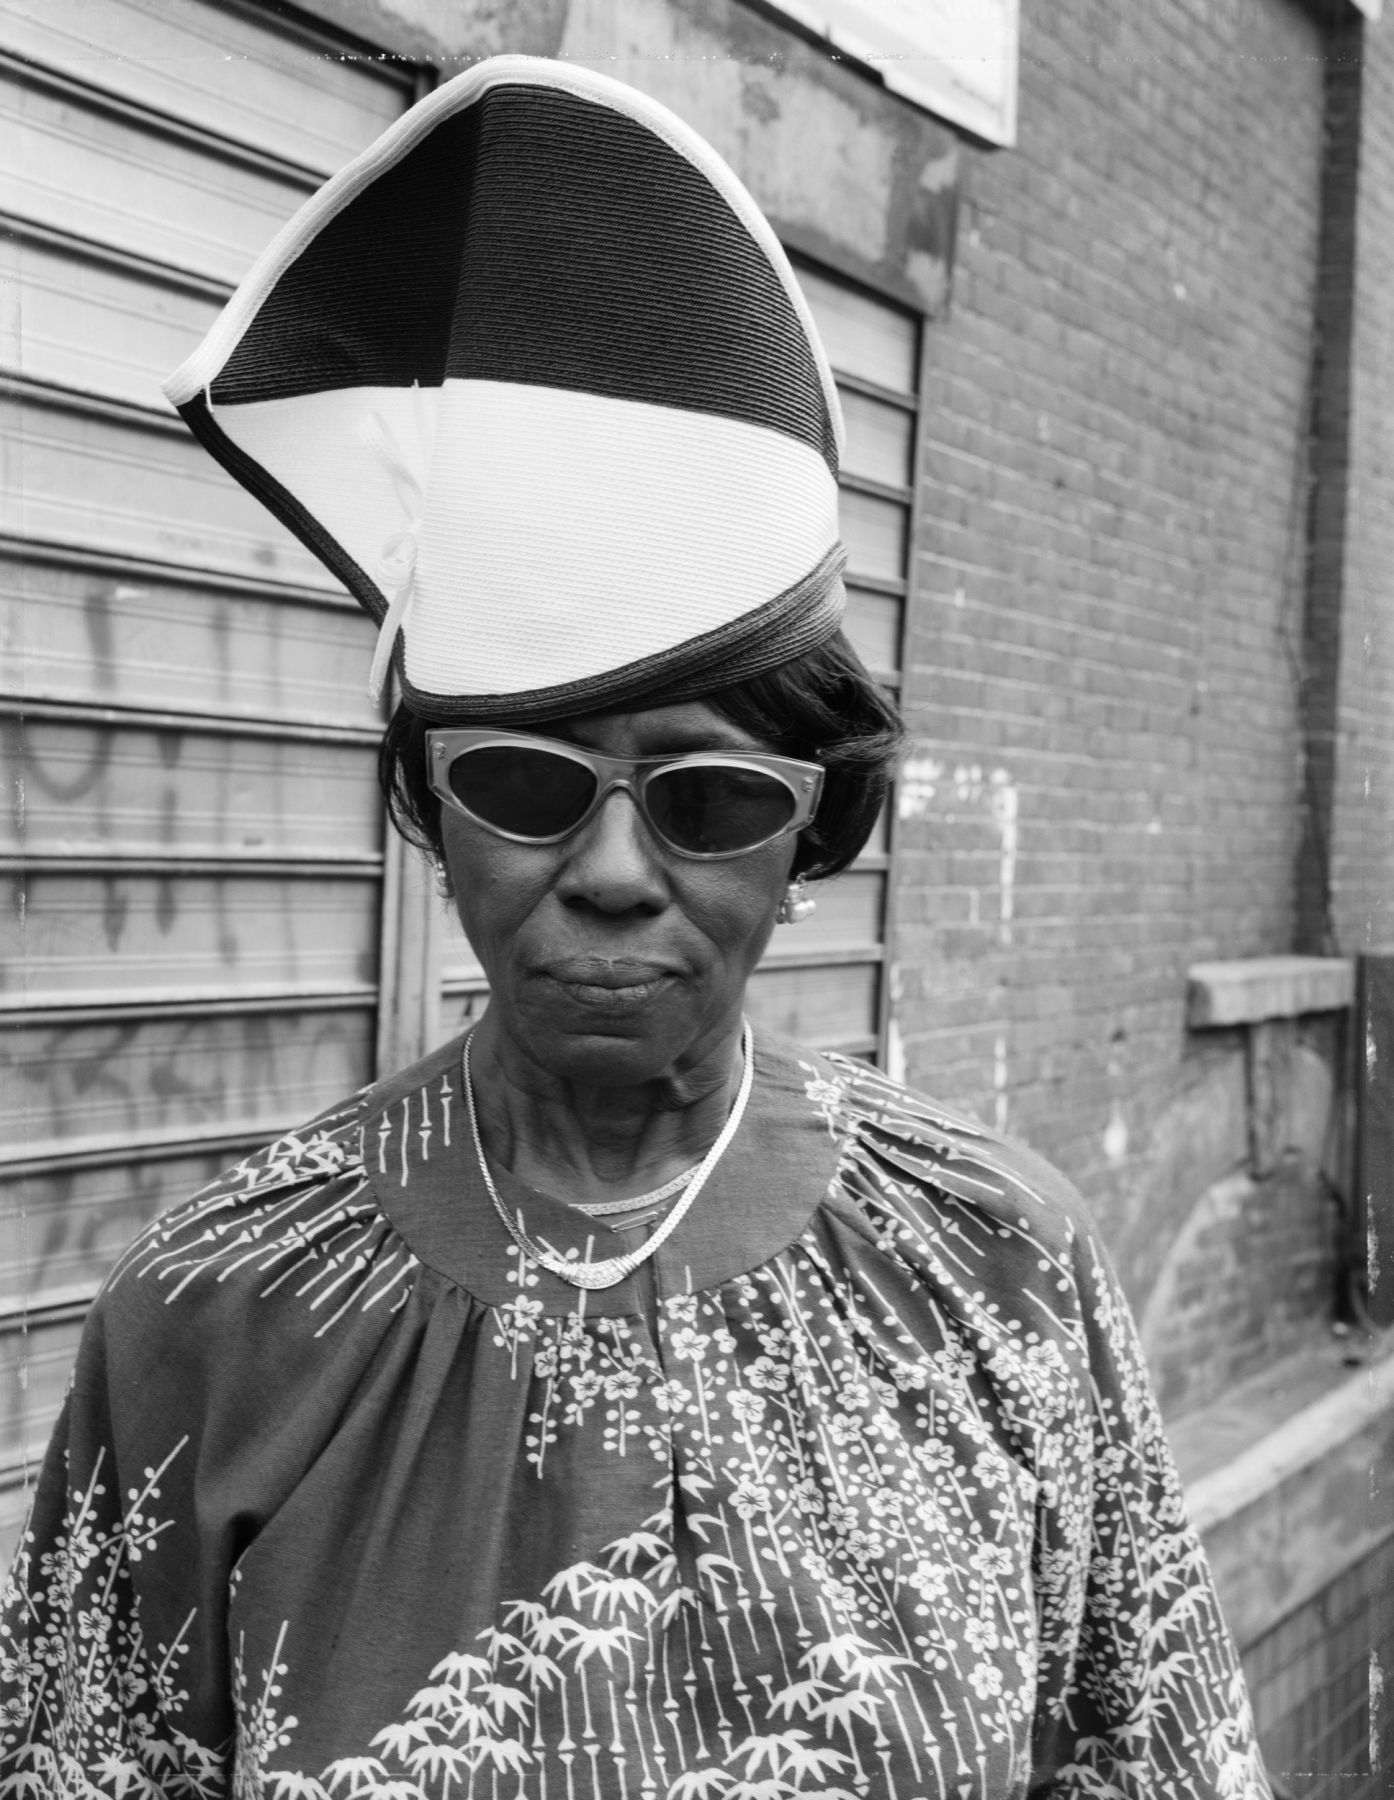 A Woman at Fulton Street and Washington Avenue, 1989